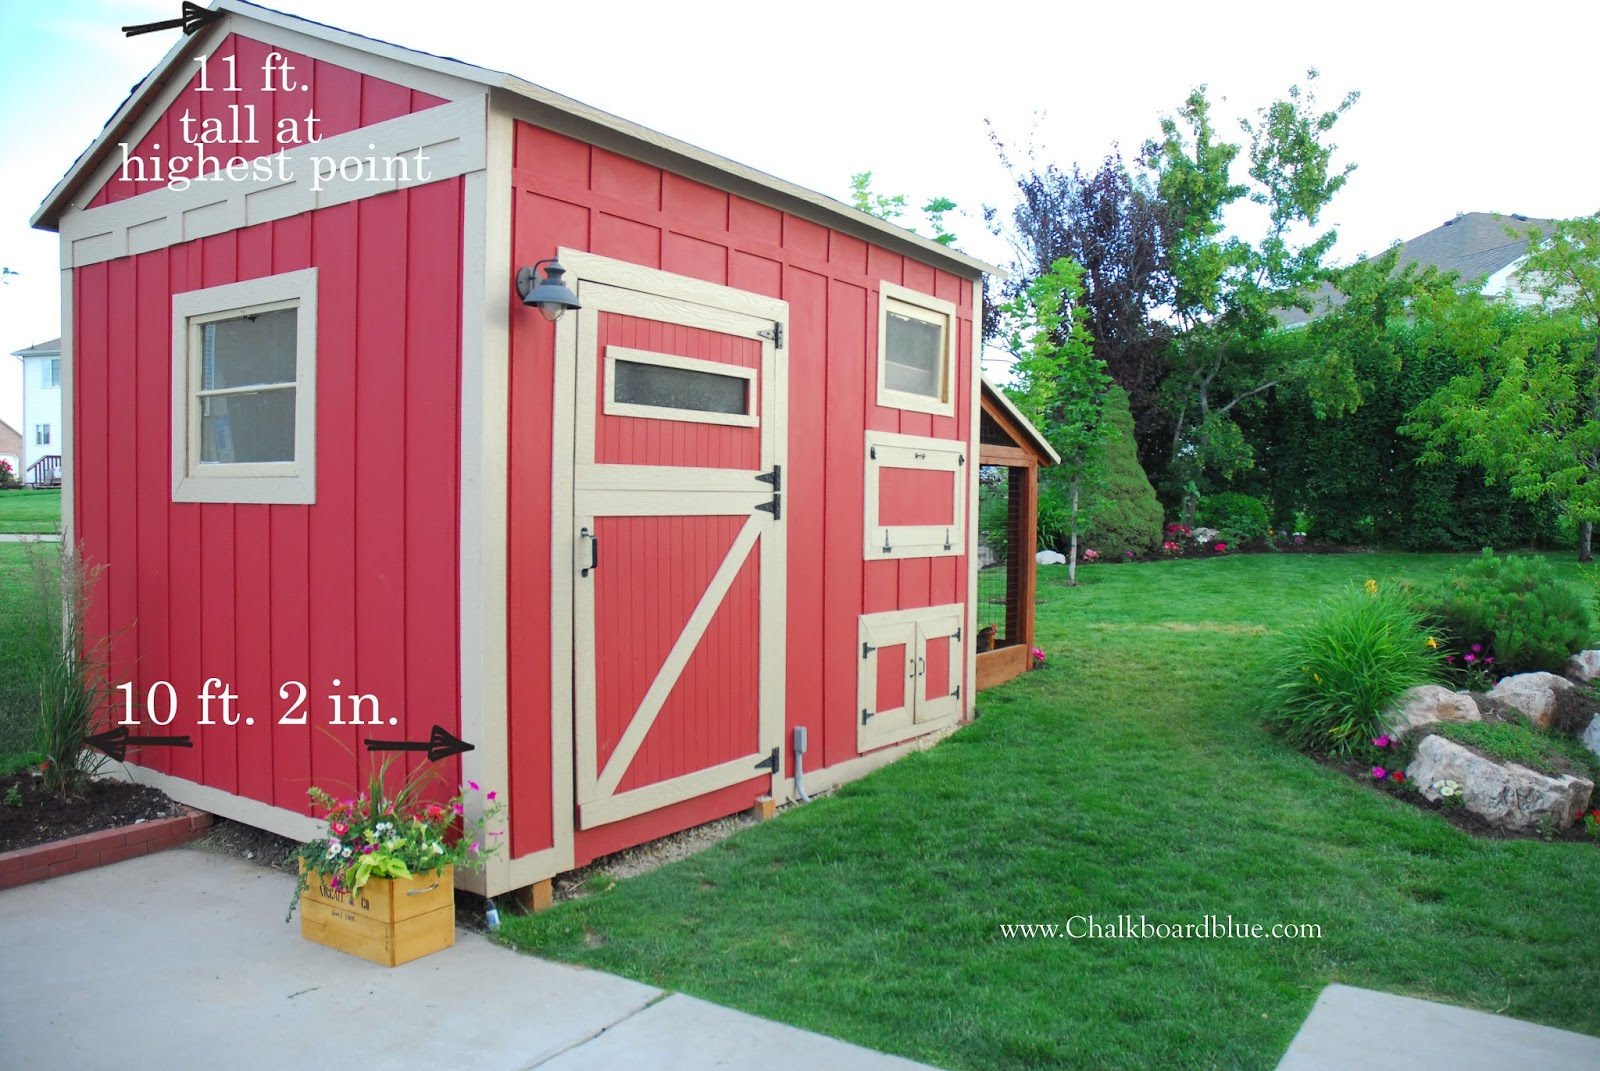 Remodelaholic | Cute DIY Chicken Coop with Attached Storage Shed